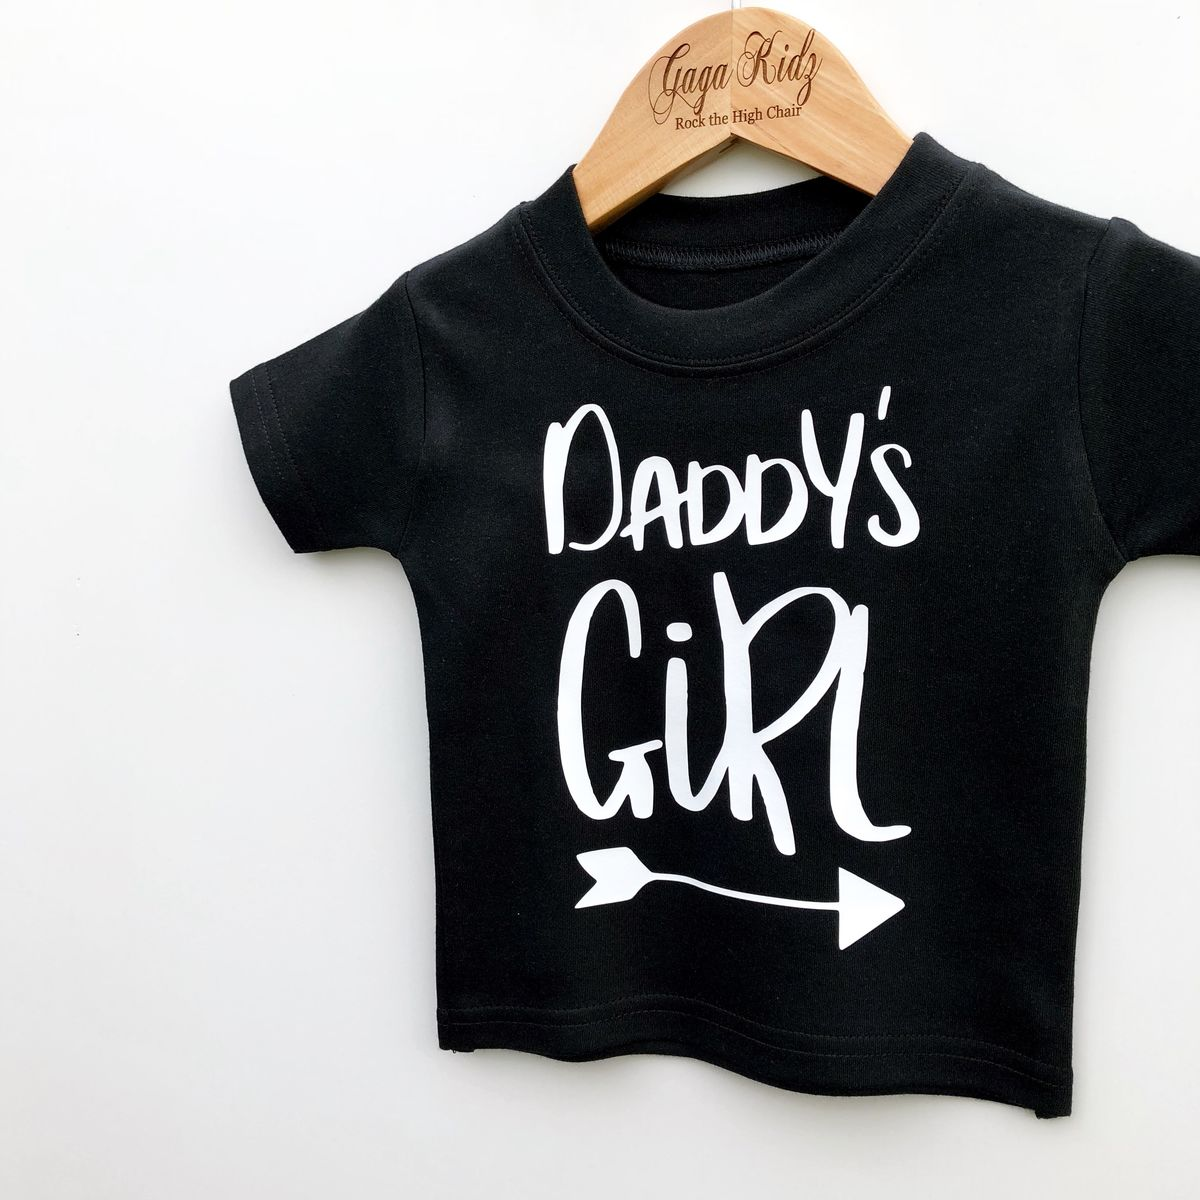 Daddy's Girl Black or White T-Shirt - product images  of